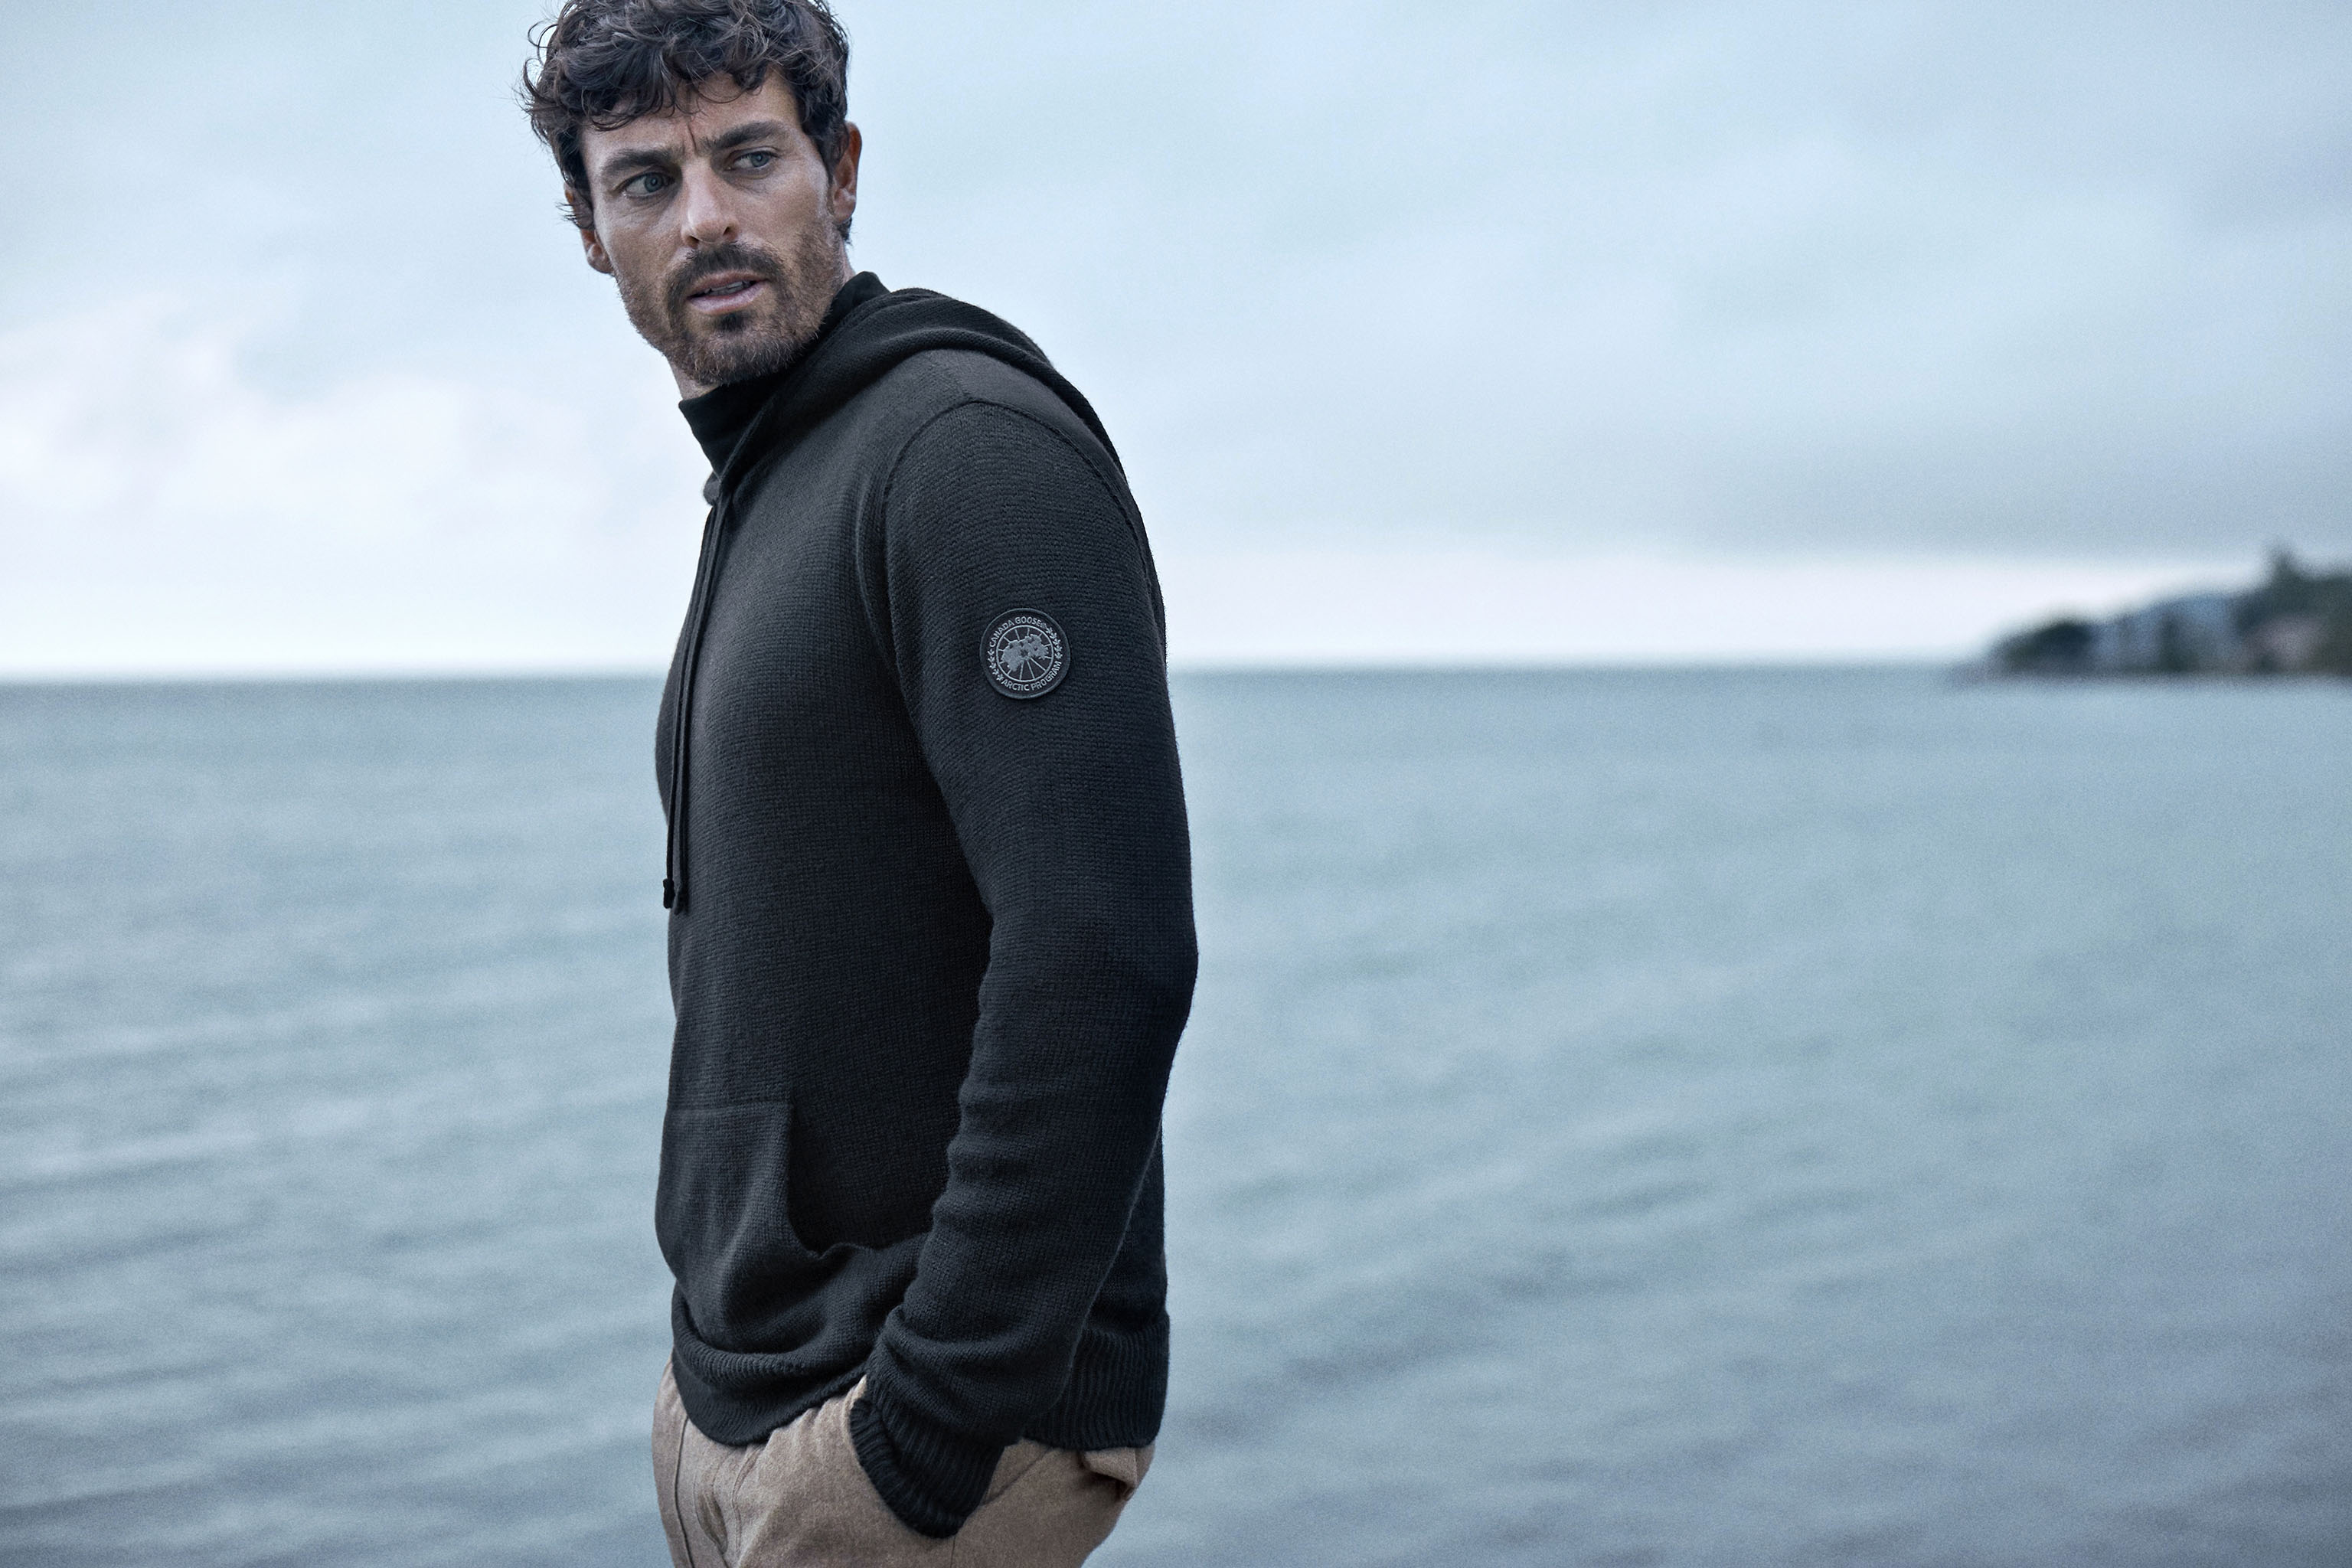 An image of Canada Goose's new knitwear.